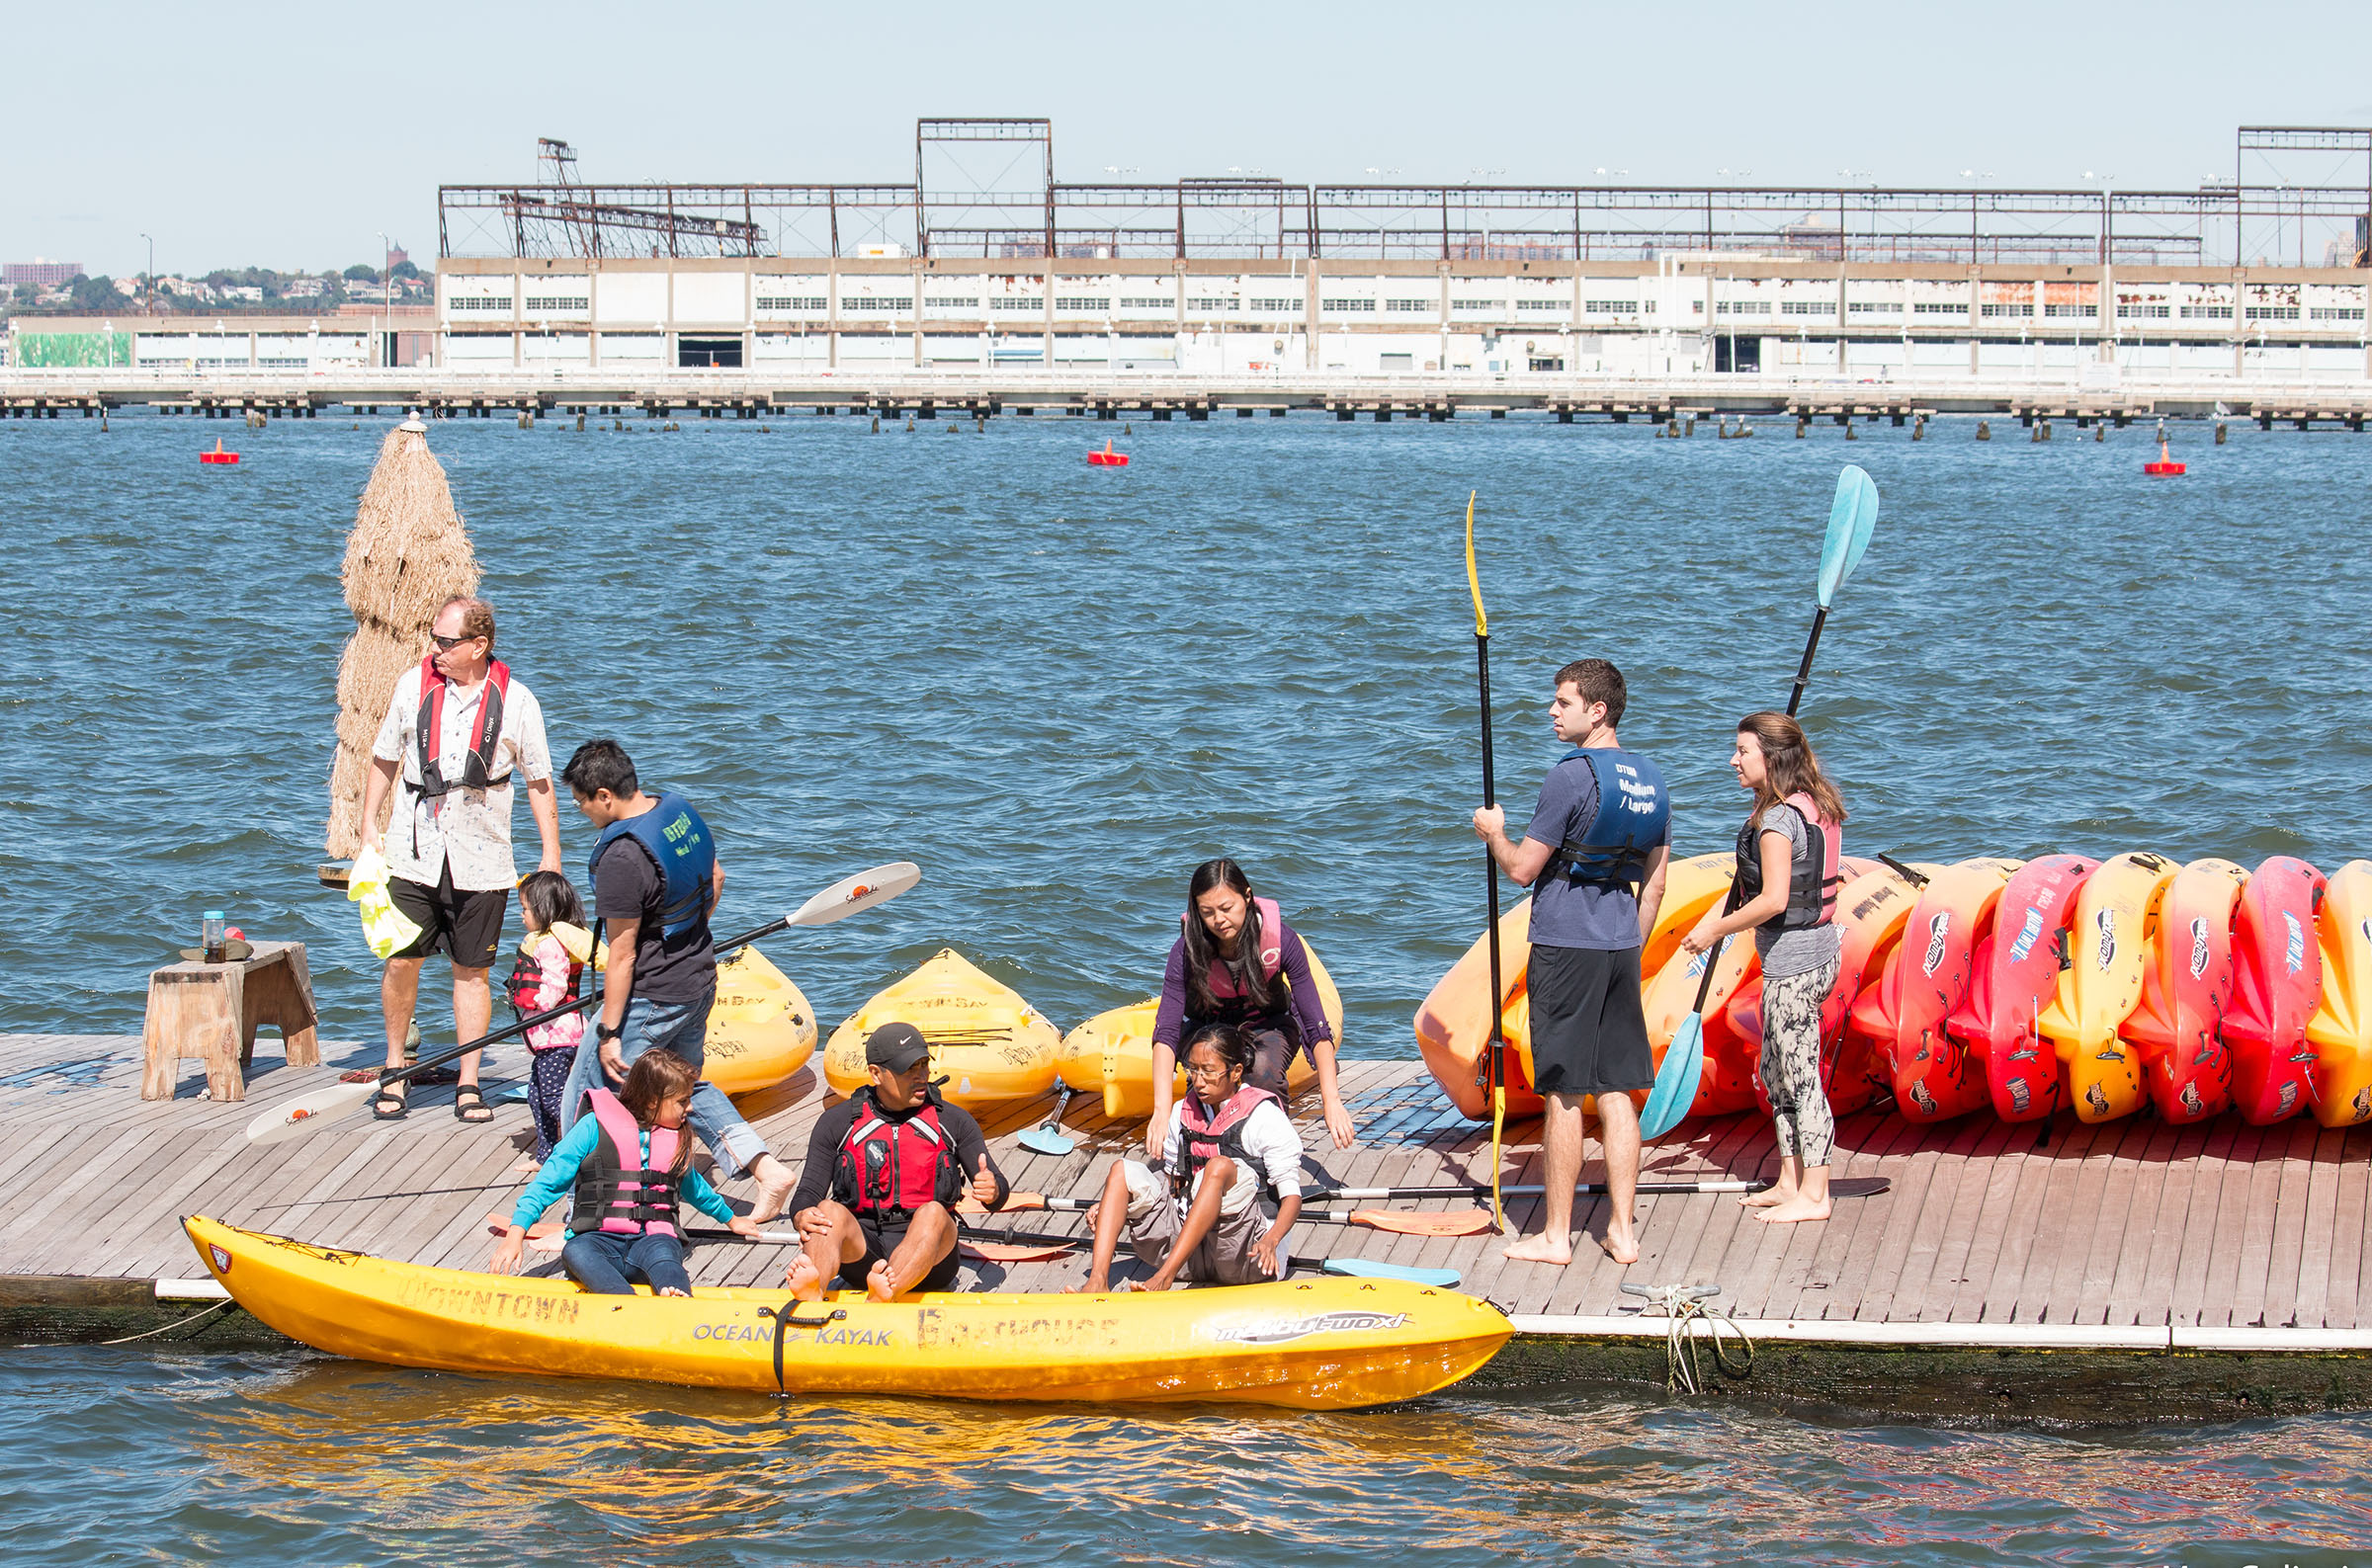 Kayakers at the Downtown Boathouse launch into the Hudson River